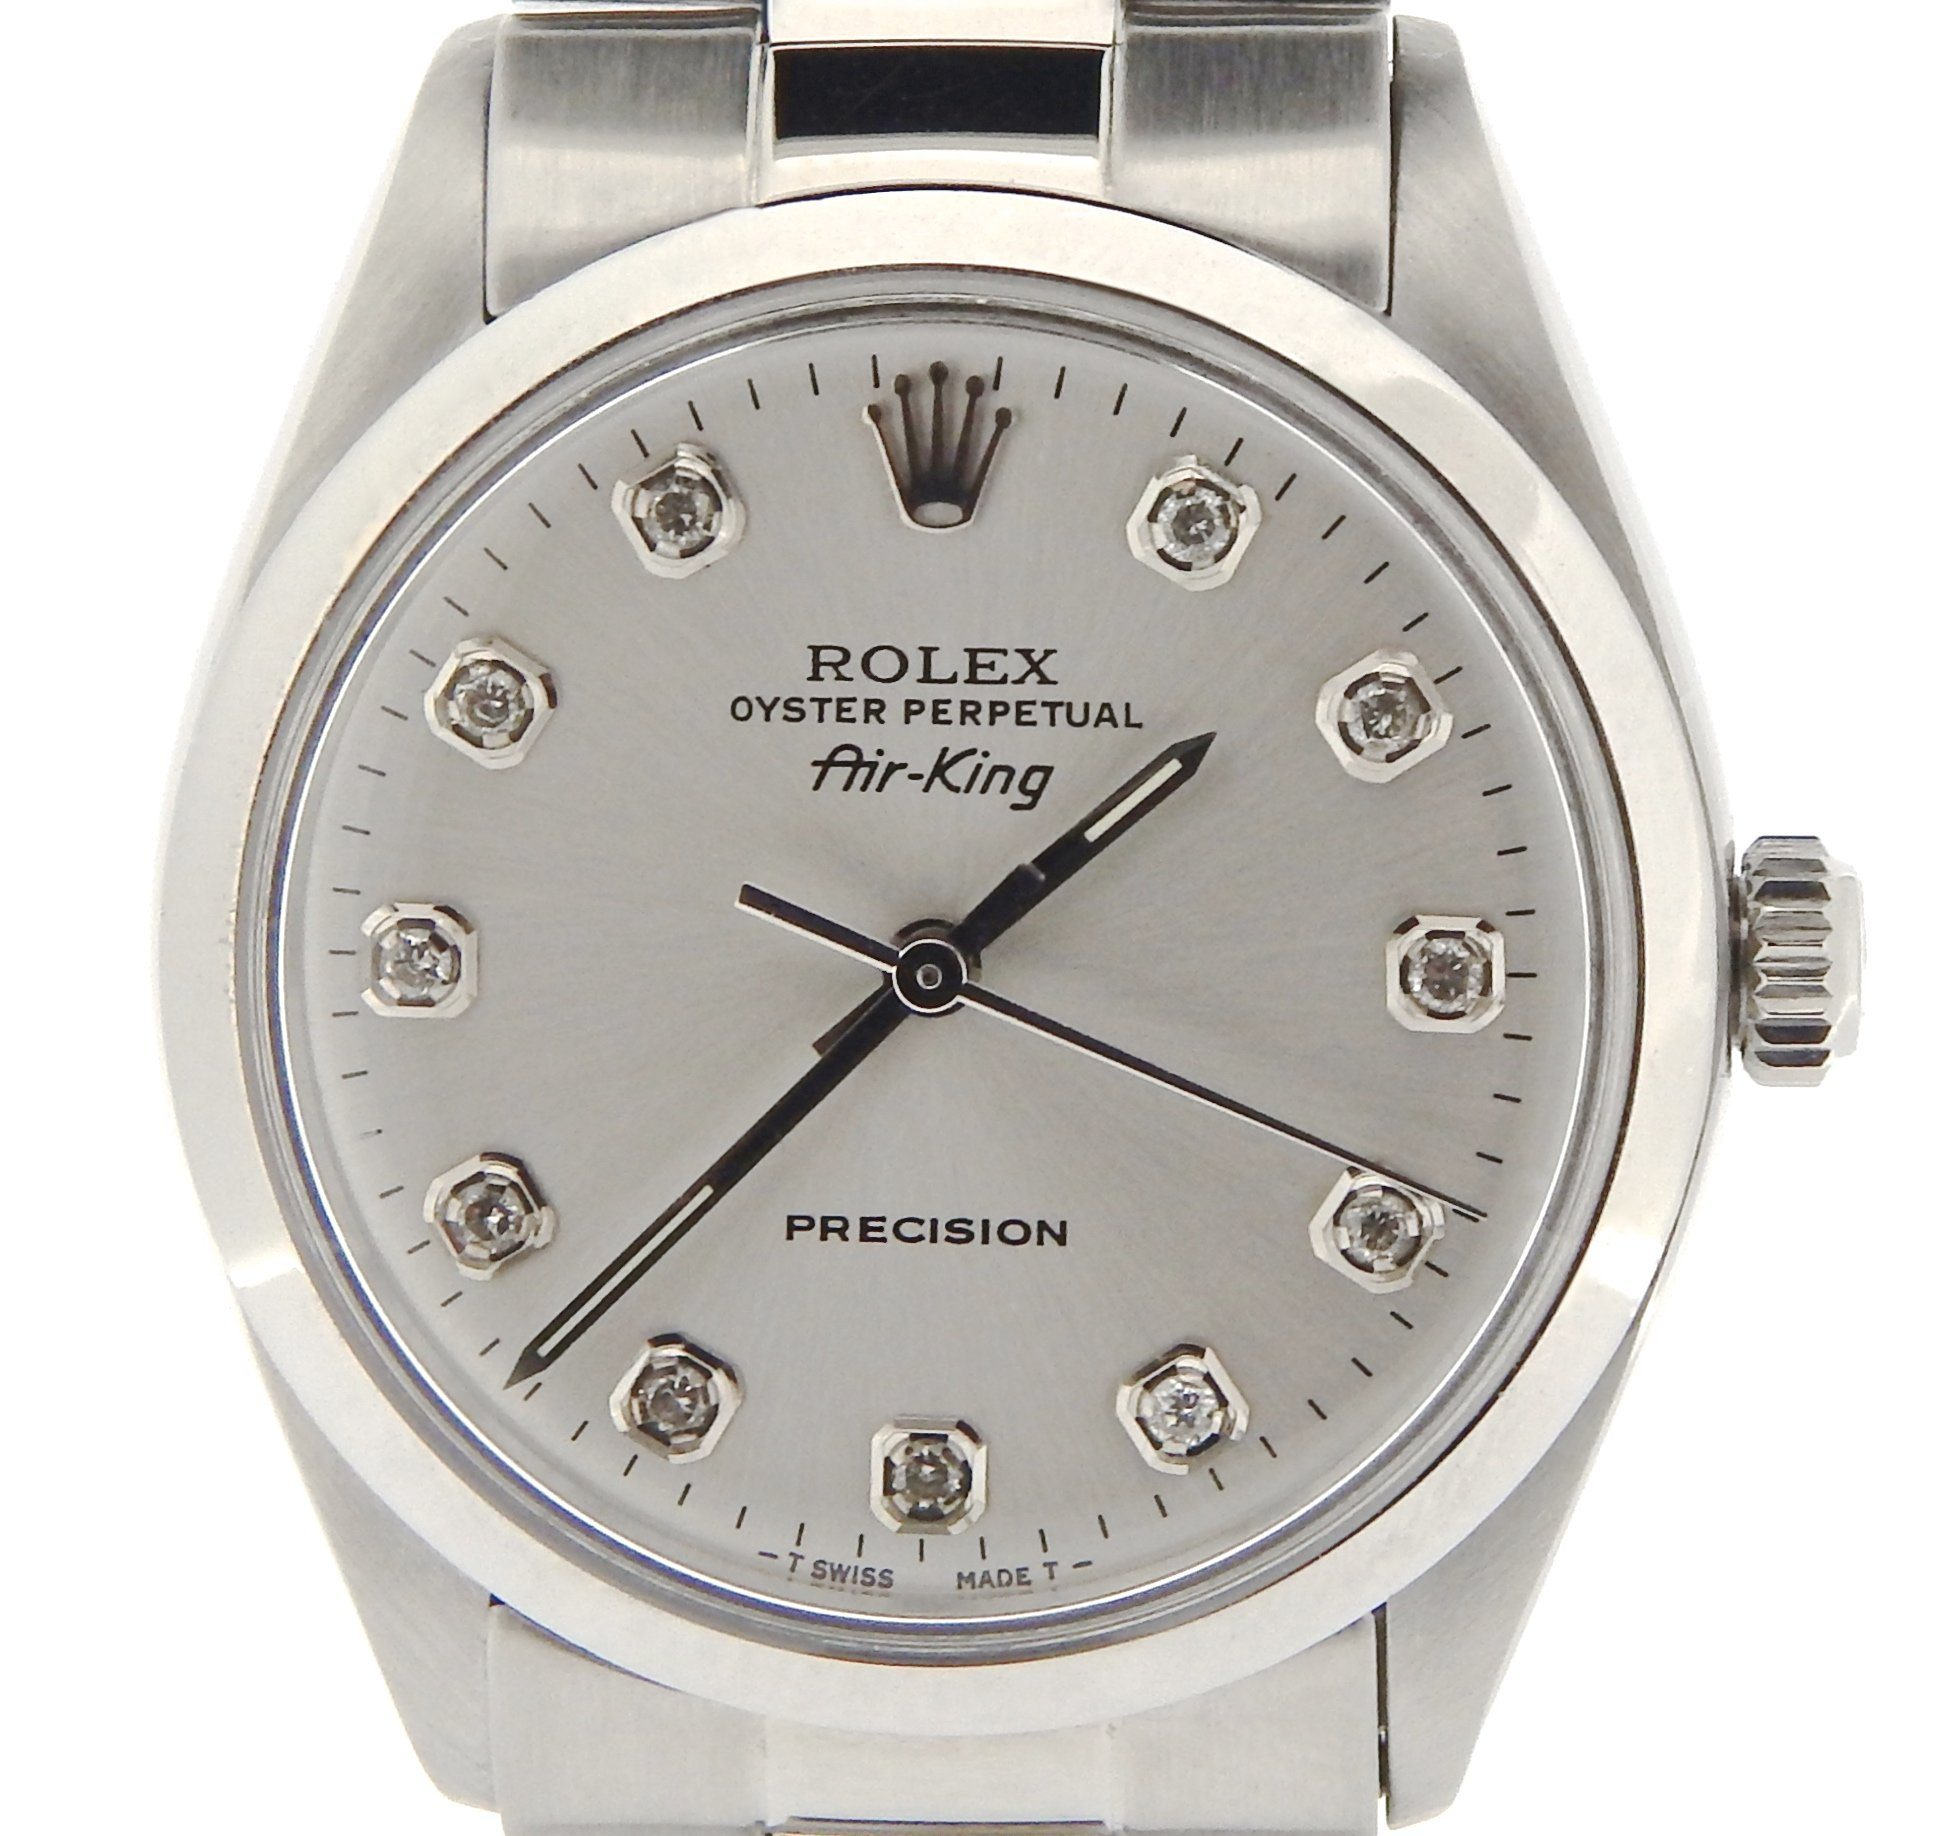 Image of Rolex Air-King 5500 34mm Mens Vintage Watch